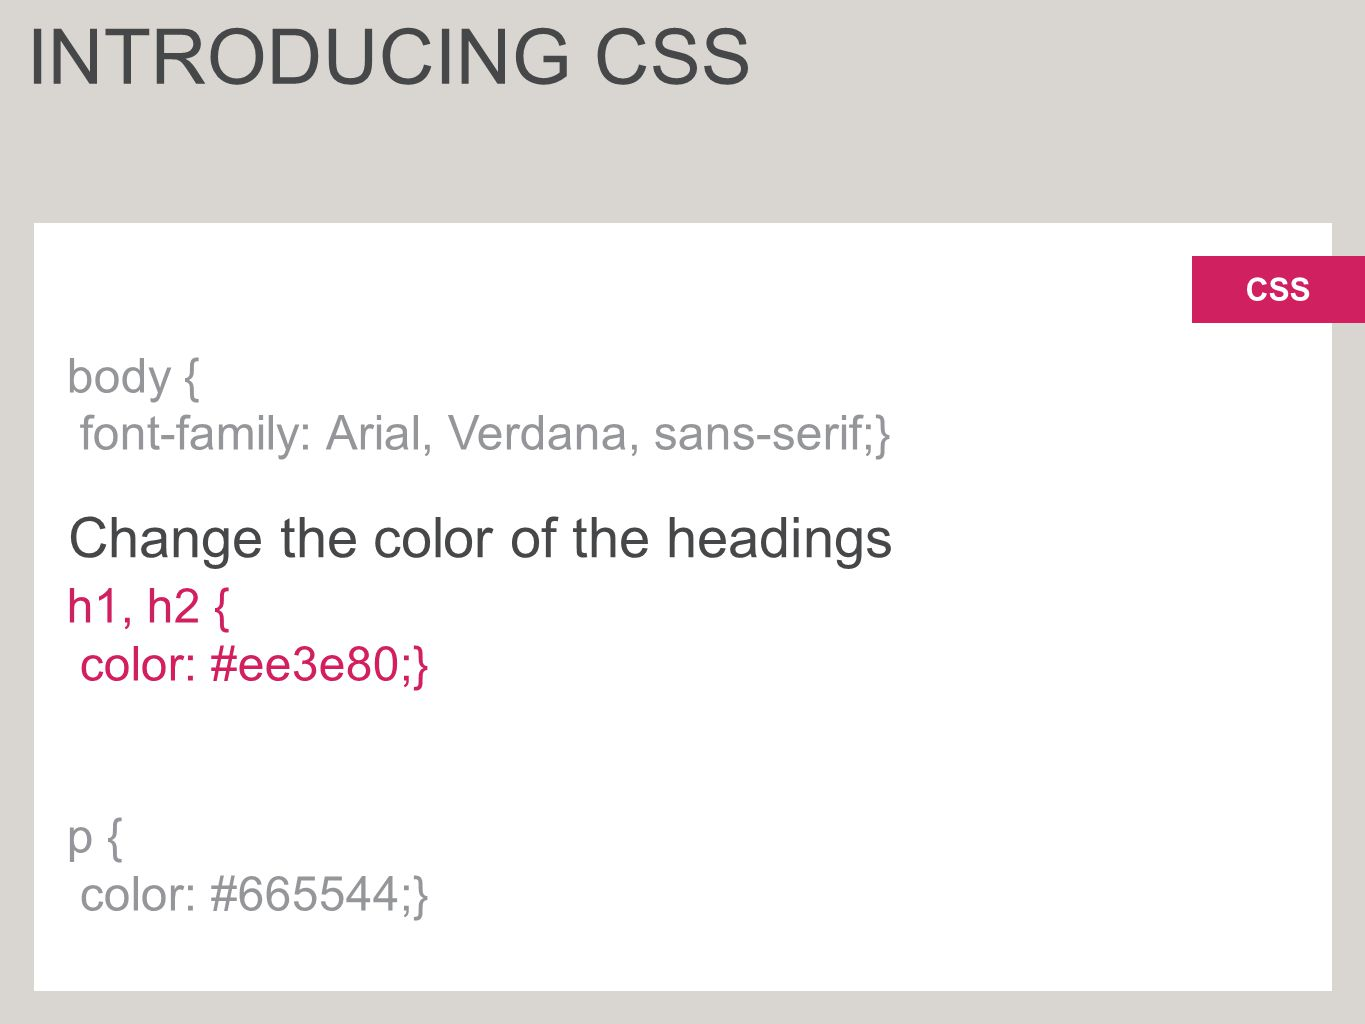 CSS body { font-family: Arial, Verdana, sans-serif;} h1, h2 { color: #ee3e80;} p { color: #665544;} INTRODUCING CSS Change the color of the headings